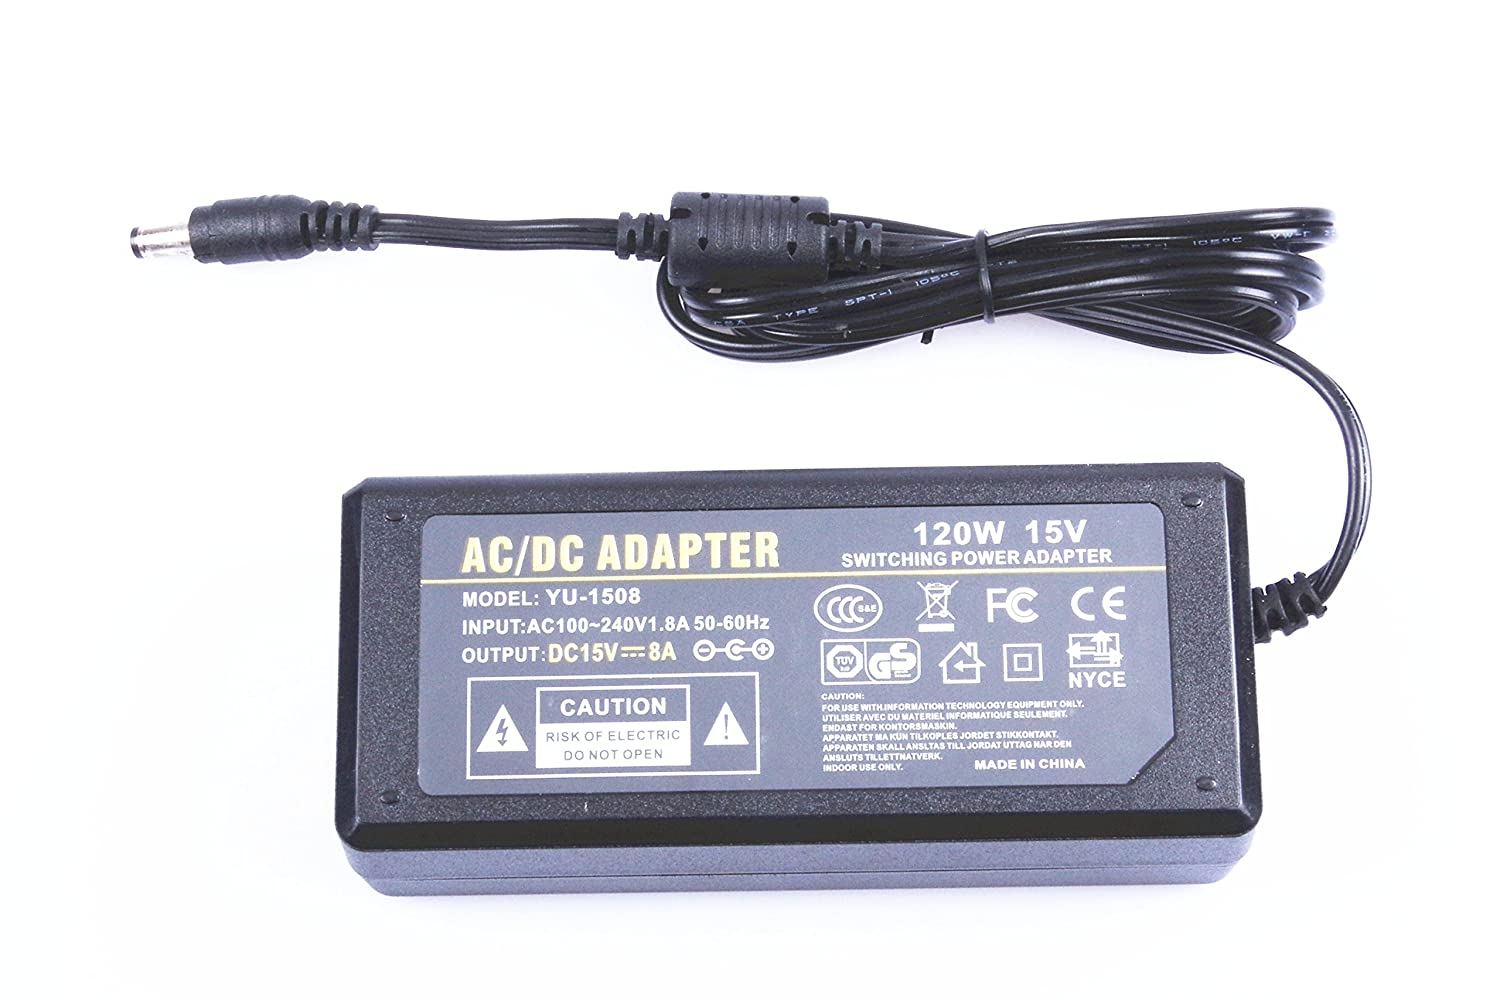 Knacro Ac 100 240v To Dc 15v 8a 120w Power Supply Powered Led Circuit Flood Lights Enkonn Technology Co Ltd Adapter Transformers Interface 55x25mm Suitable For Routers Switches Control Systems